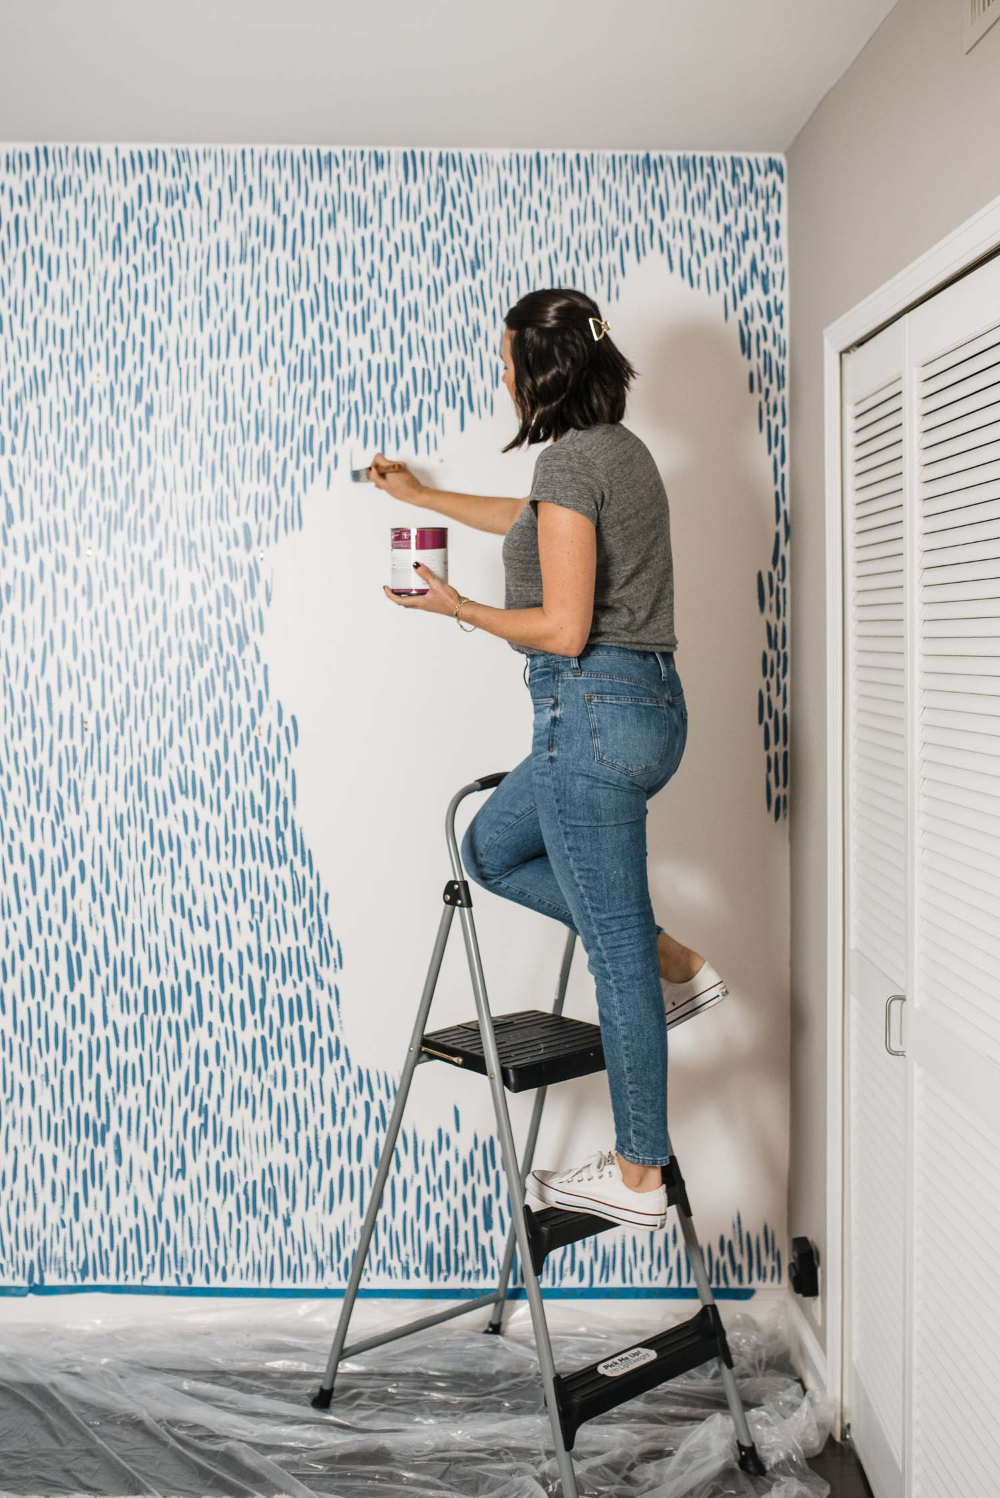 A fun DIY accent wall tutorial with a simple brushstroke. This accent wall helps to transform any wall in your home. Try it in the home office, a powder room or a nursery for a bold statement that looks like wallpaper! See the step by step tutorial to create this DIY brushstroke accent wall today #homedecor #diy #wallpaper